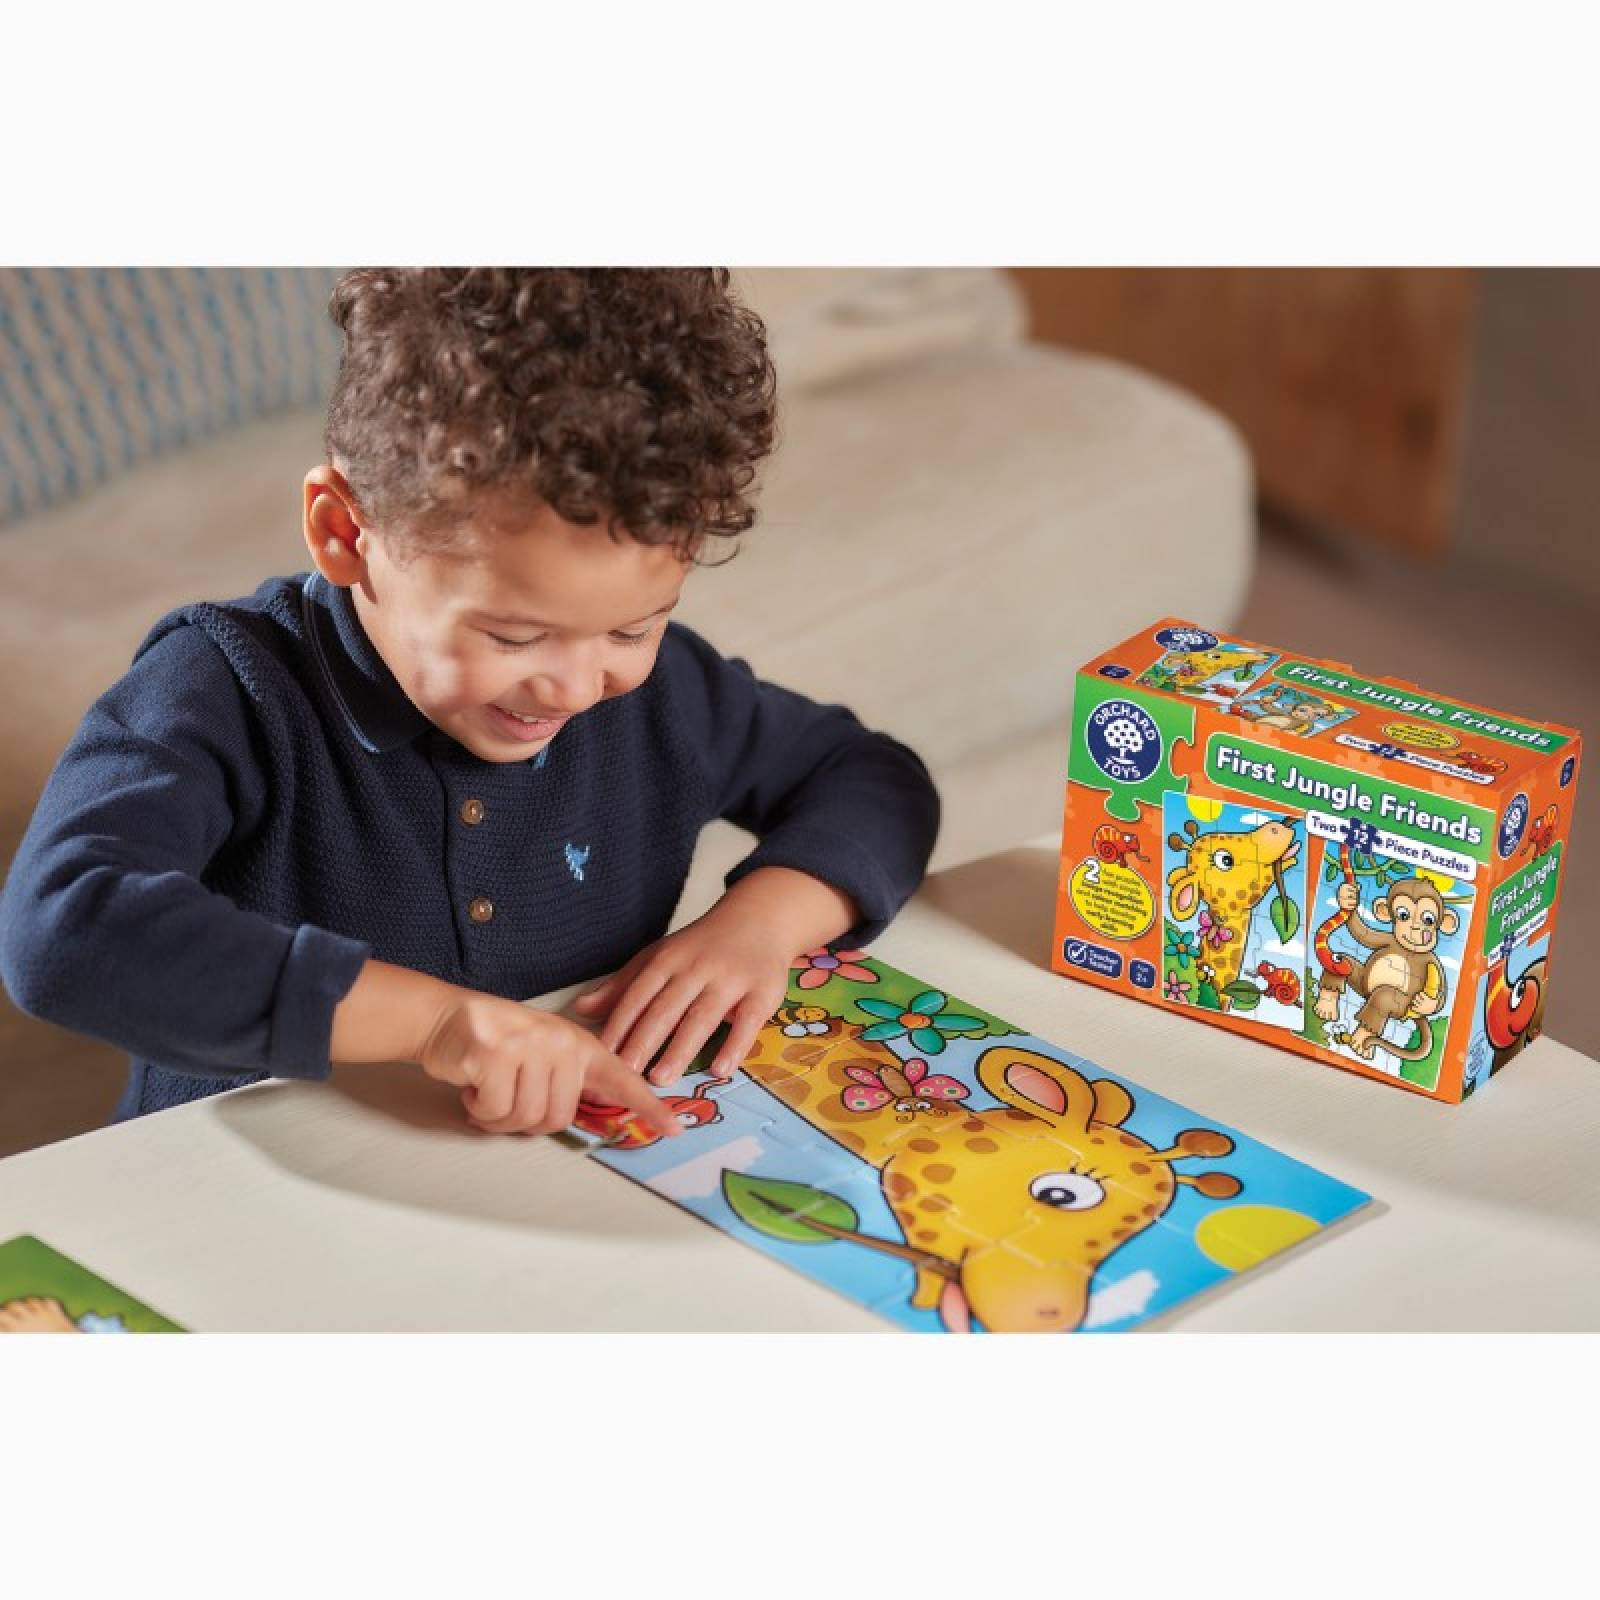 First Jungle Friends Jigsaw Puzzles By Orchard Toys 2+ thumbnails